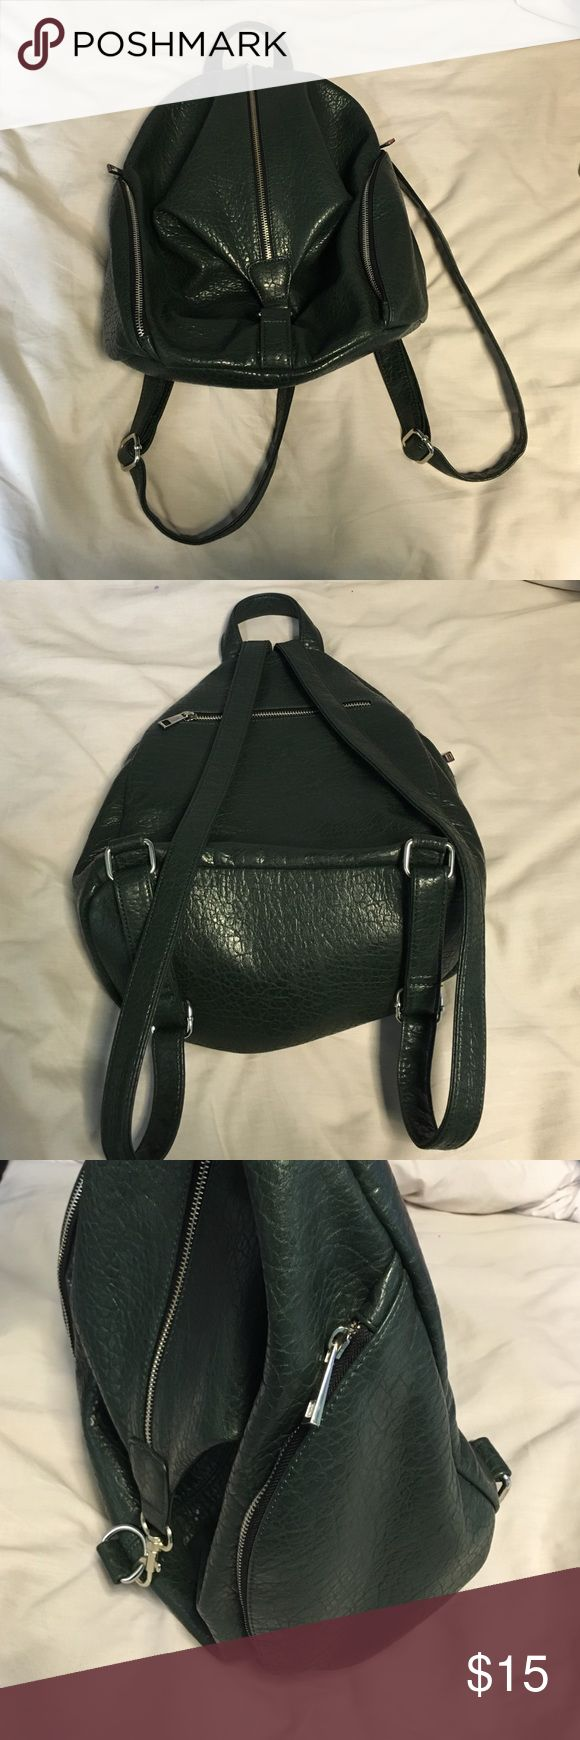 Great faux leather green backpack Great faux leather green backpack Forever 21 Bags Backpacks